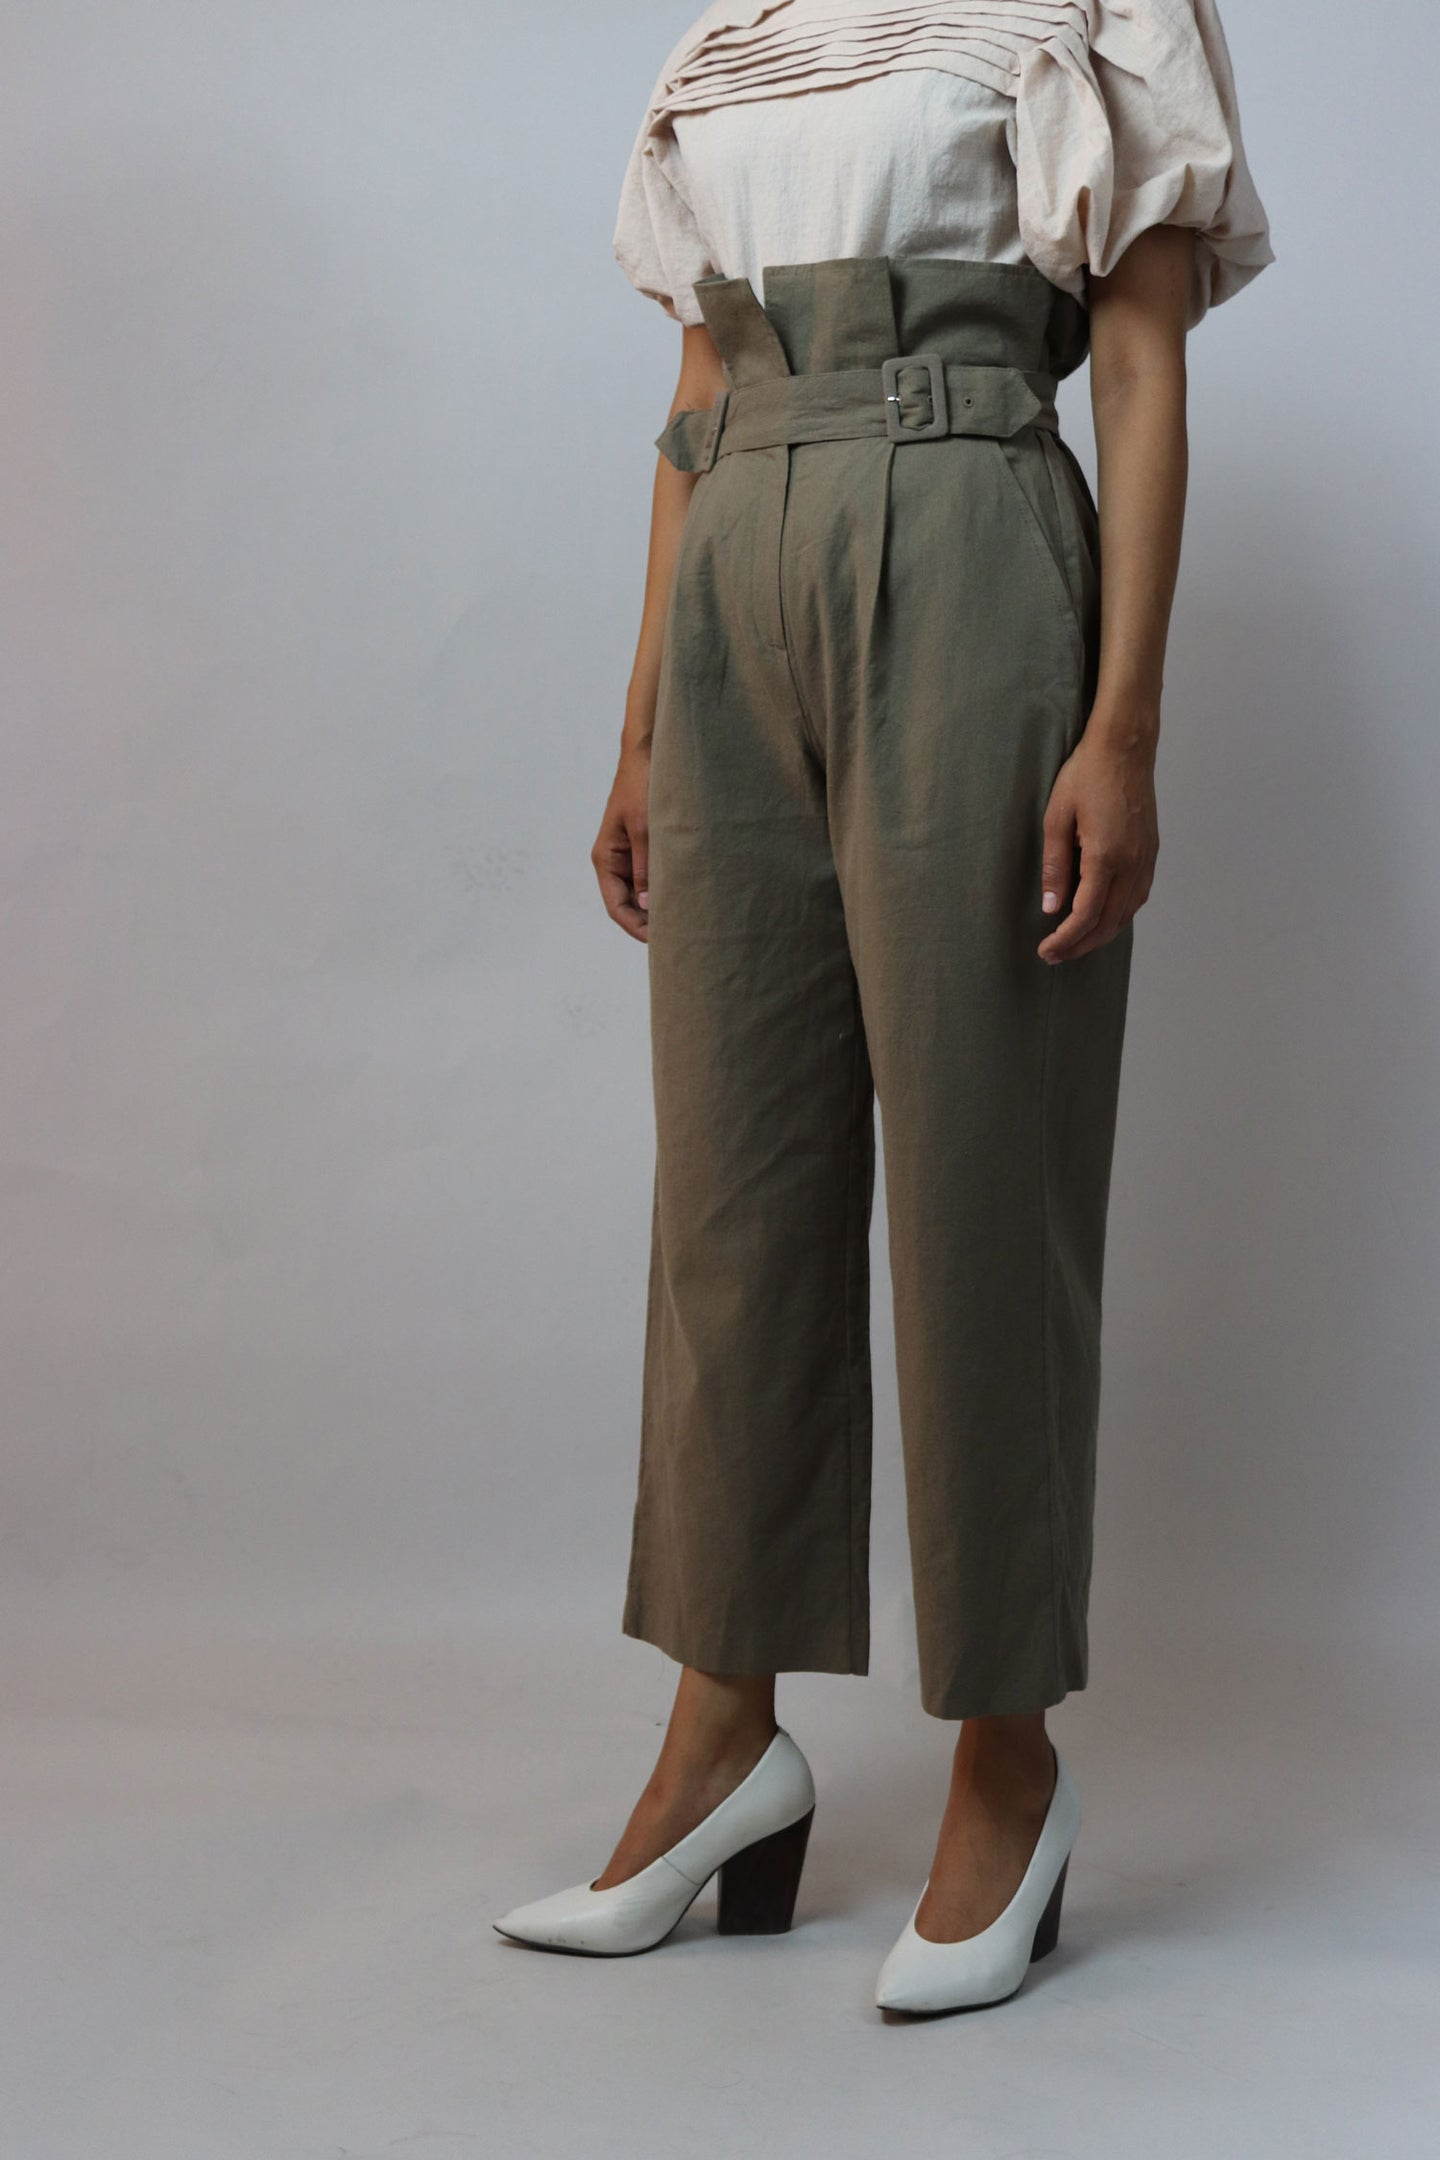 Brown High Waisted Loose Pants